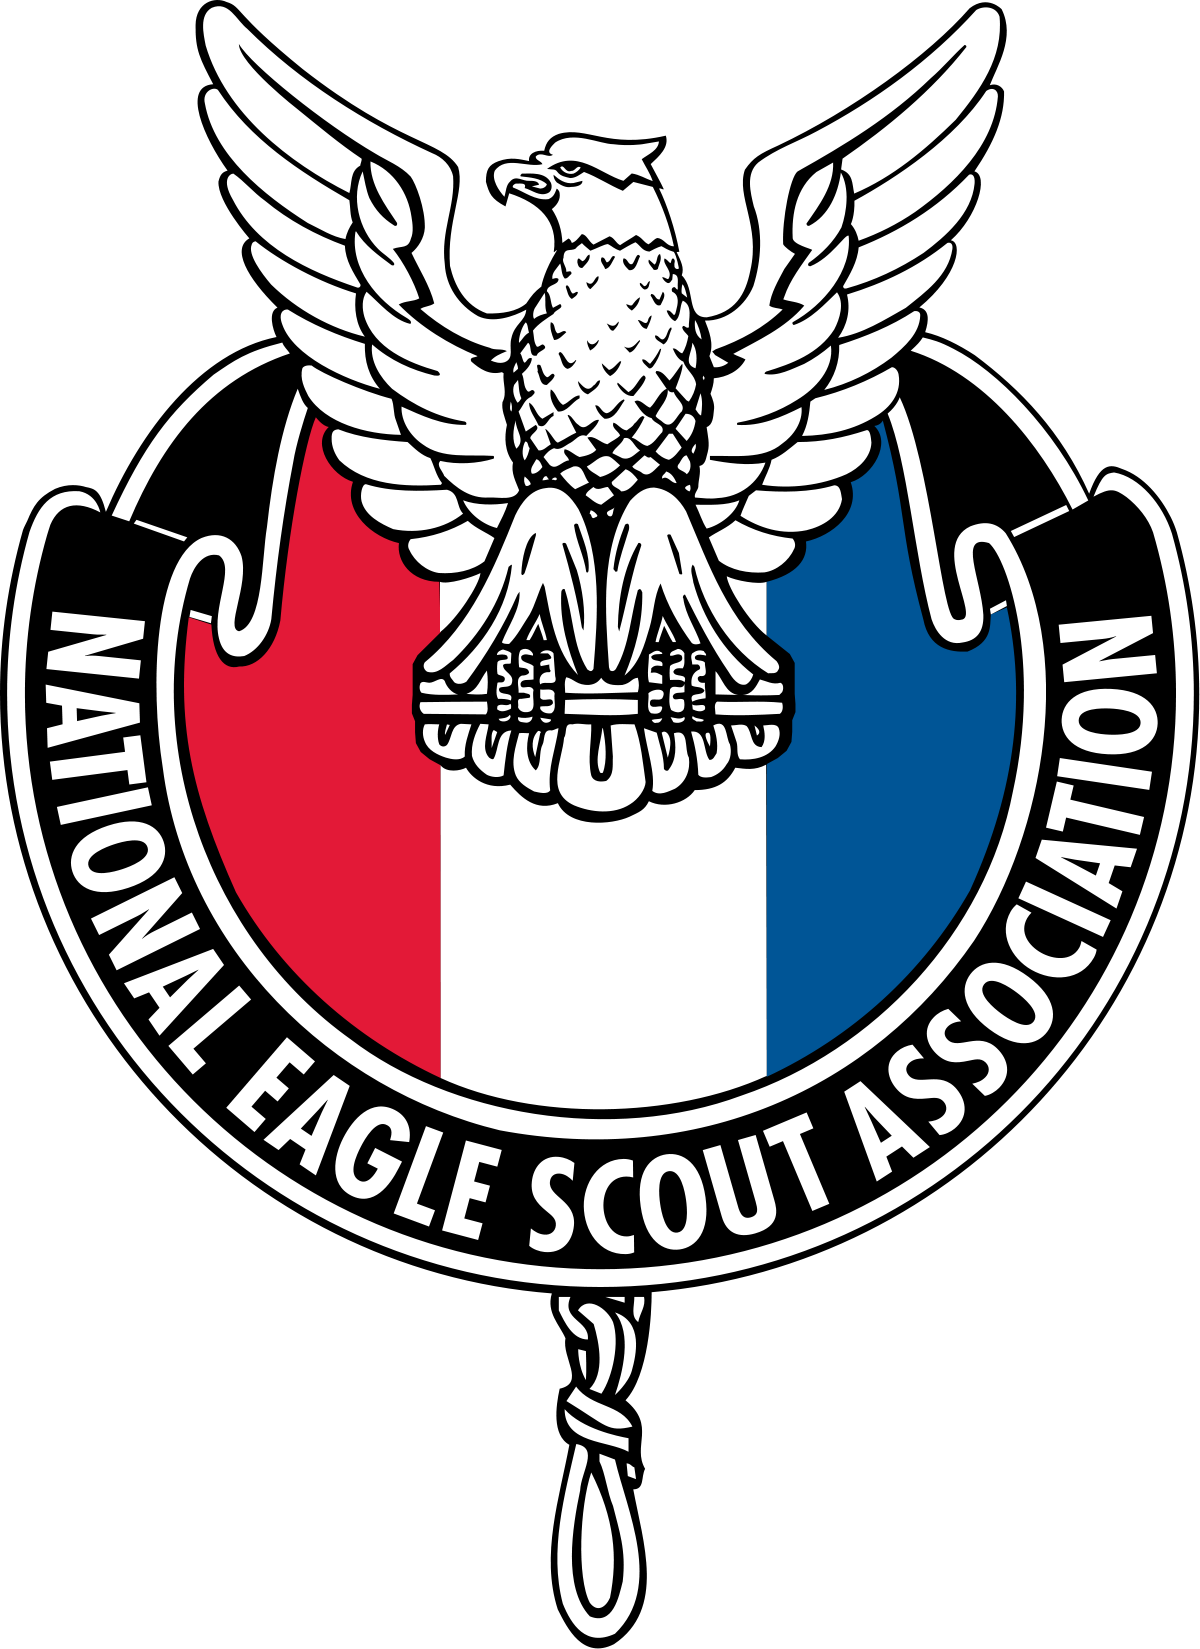 Boy scout star rank clipart picture royalty free download National Eagle Scout Association - Wikipedia picture royalty free download